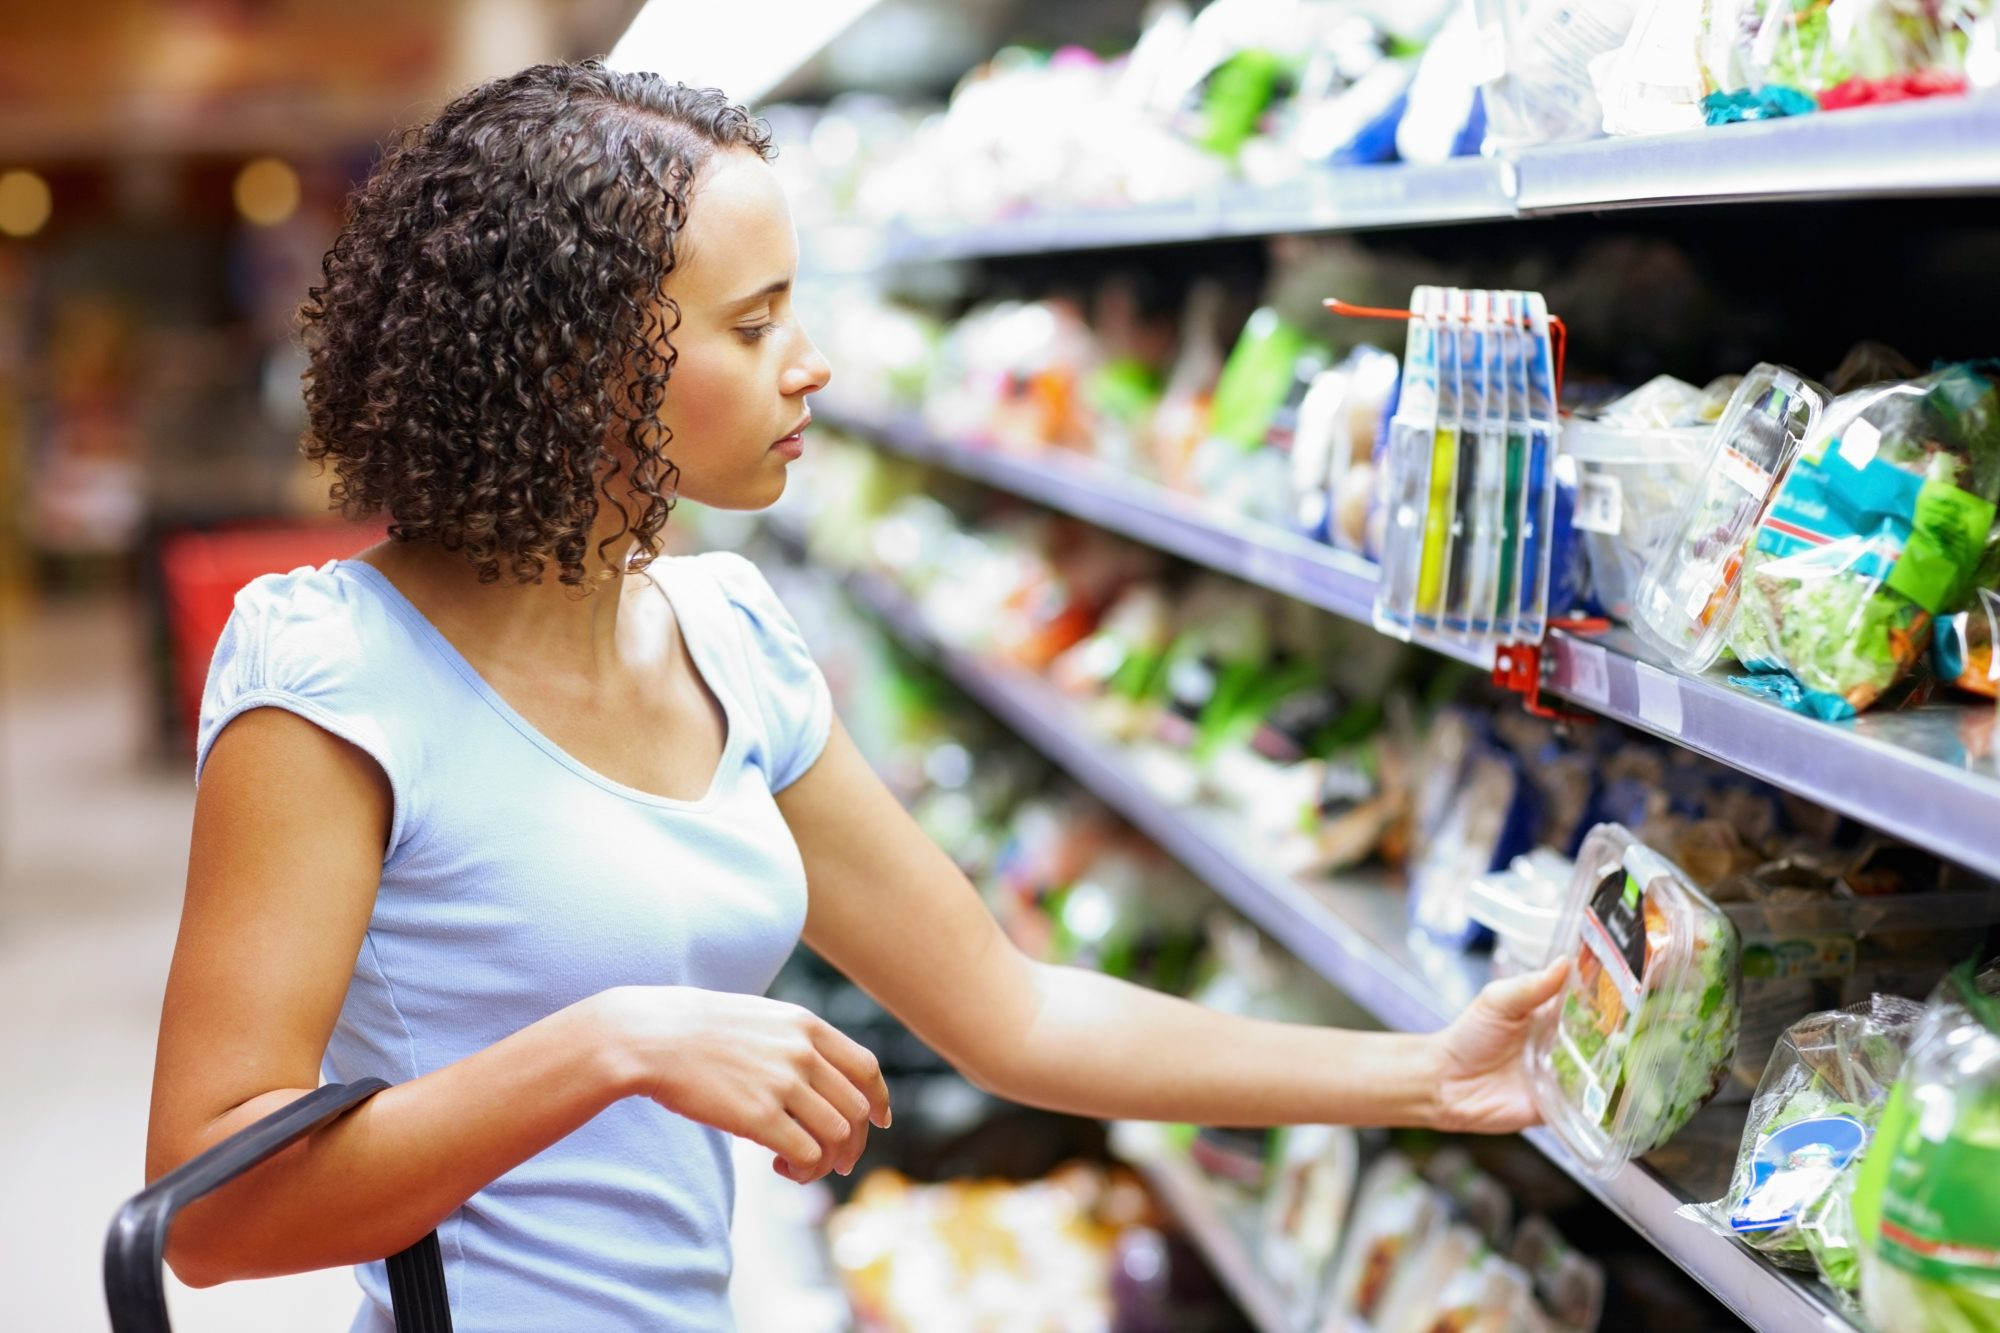 nutrition-label-food-grocery-store